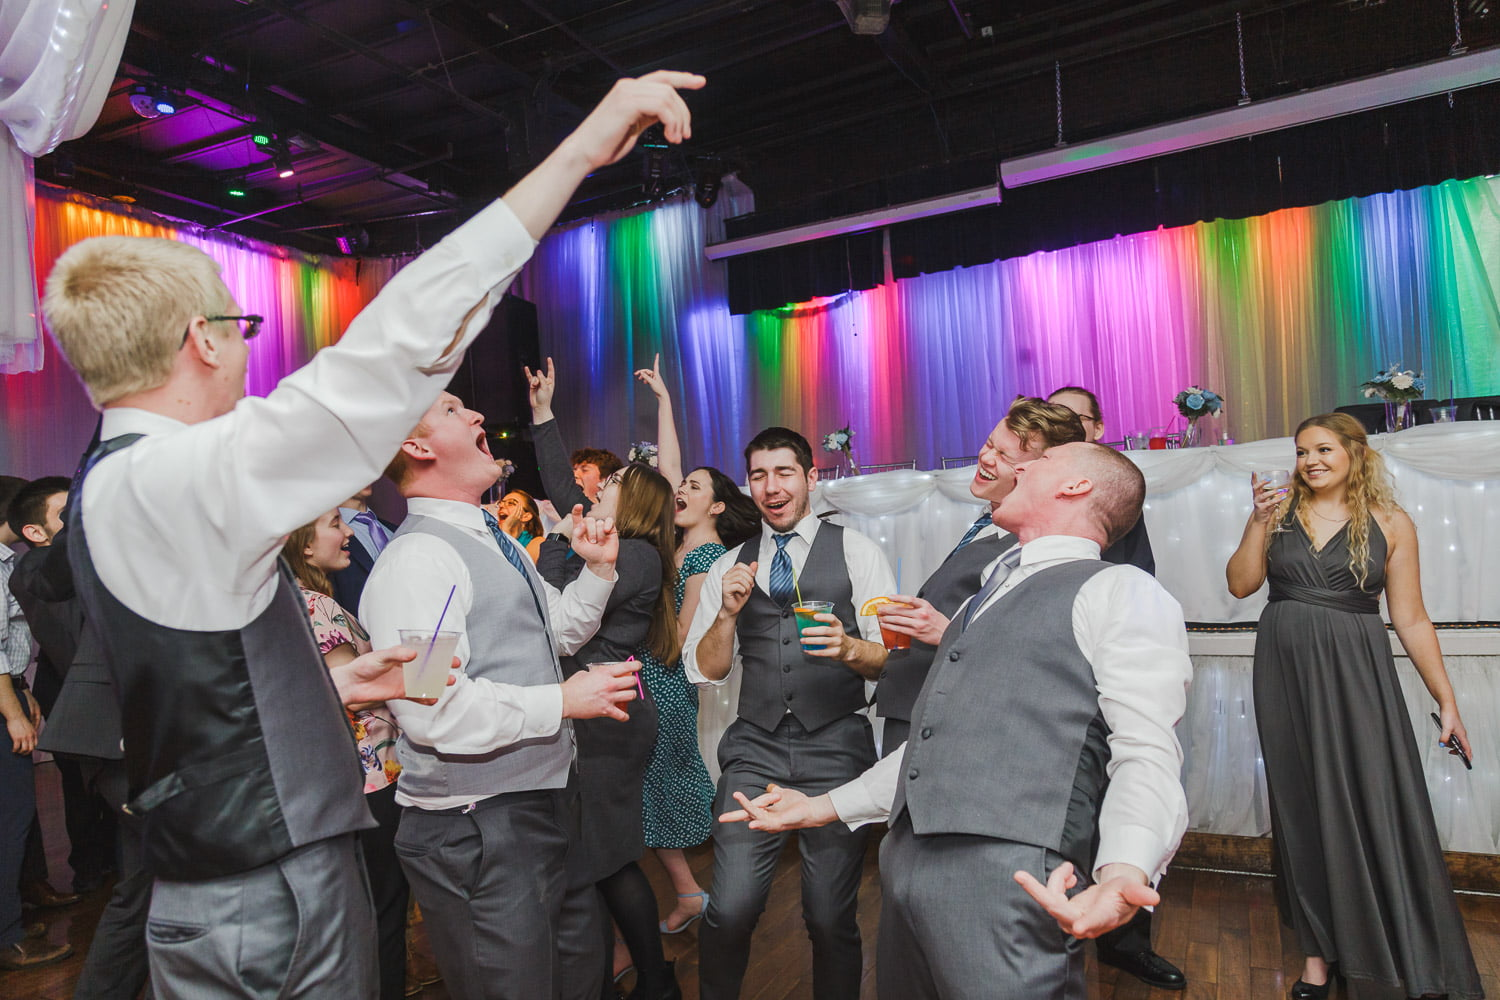 dancing during a wild wedding party at Profile in Minneapolis